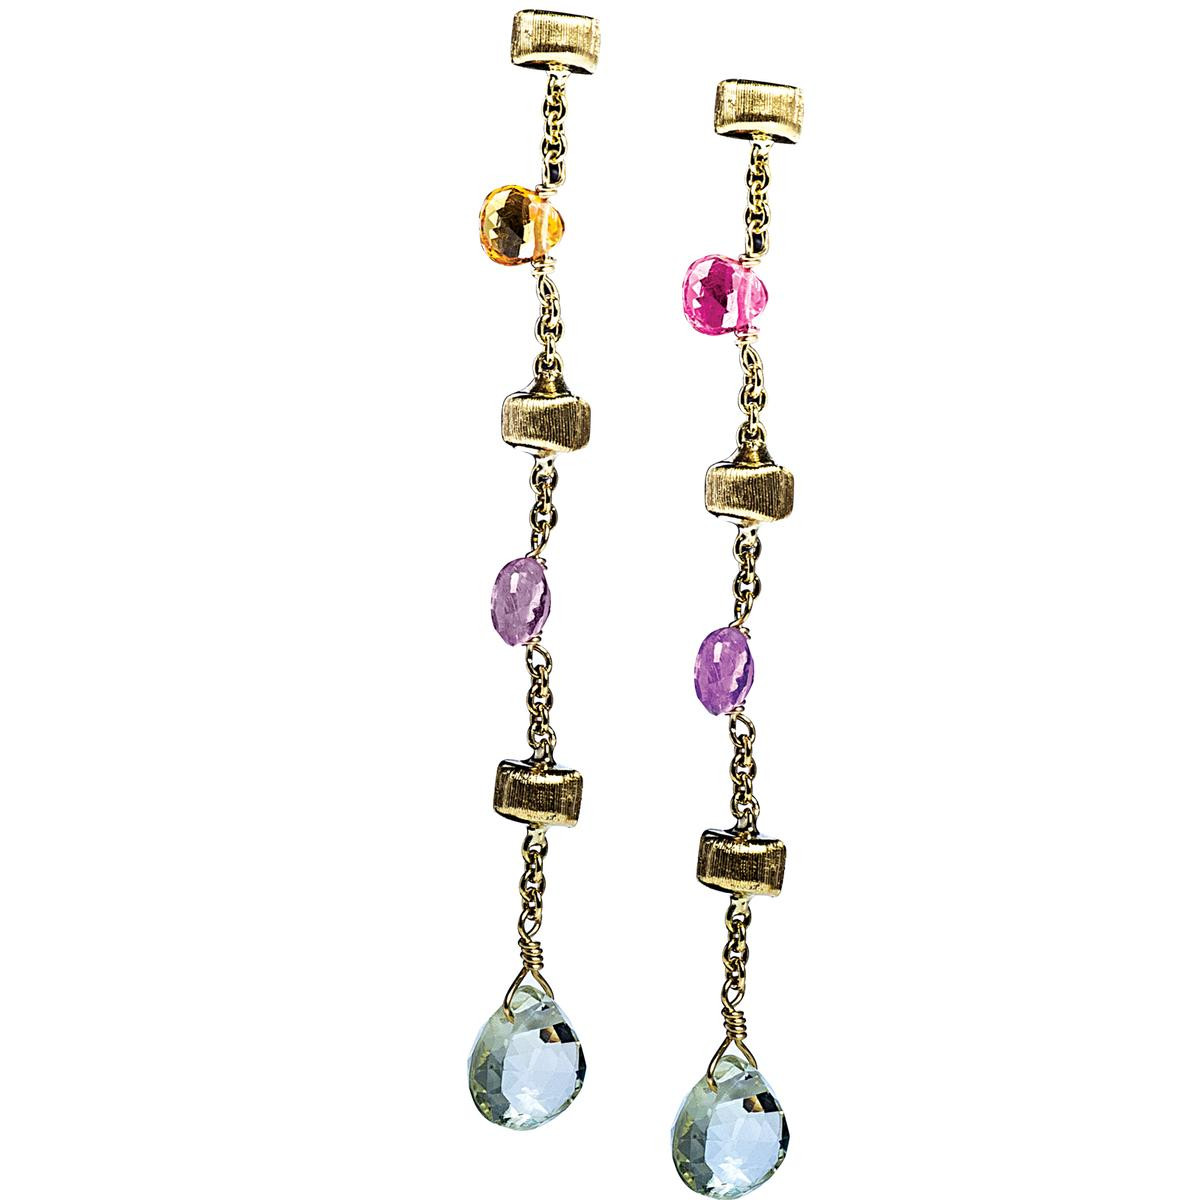 Marco Bicego Mixed Stone Paradise Earrings